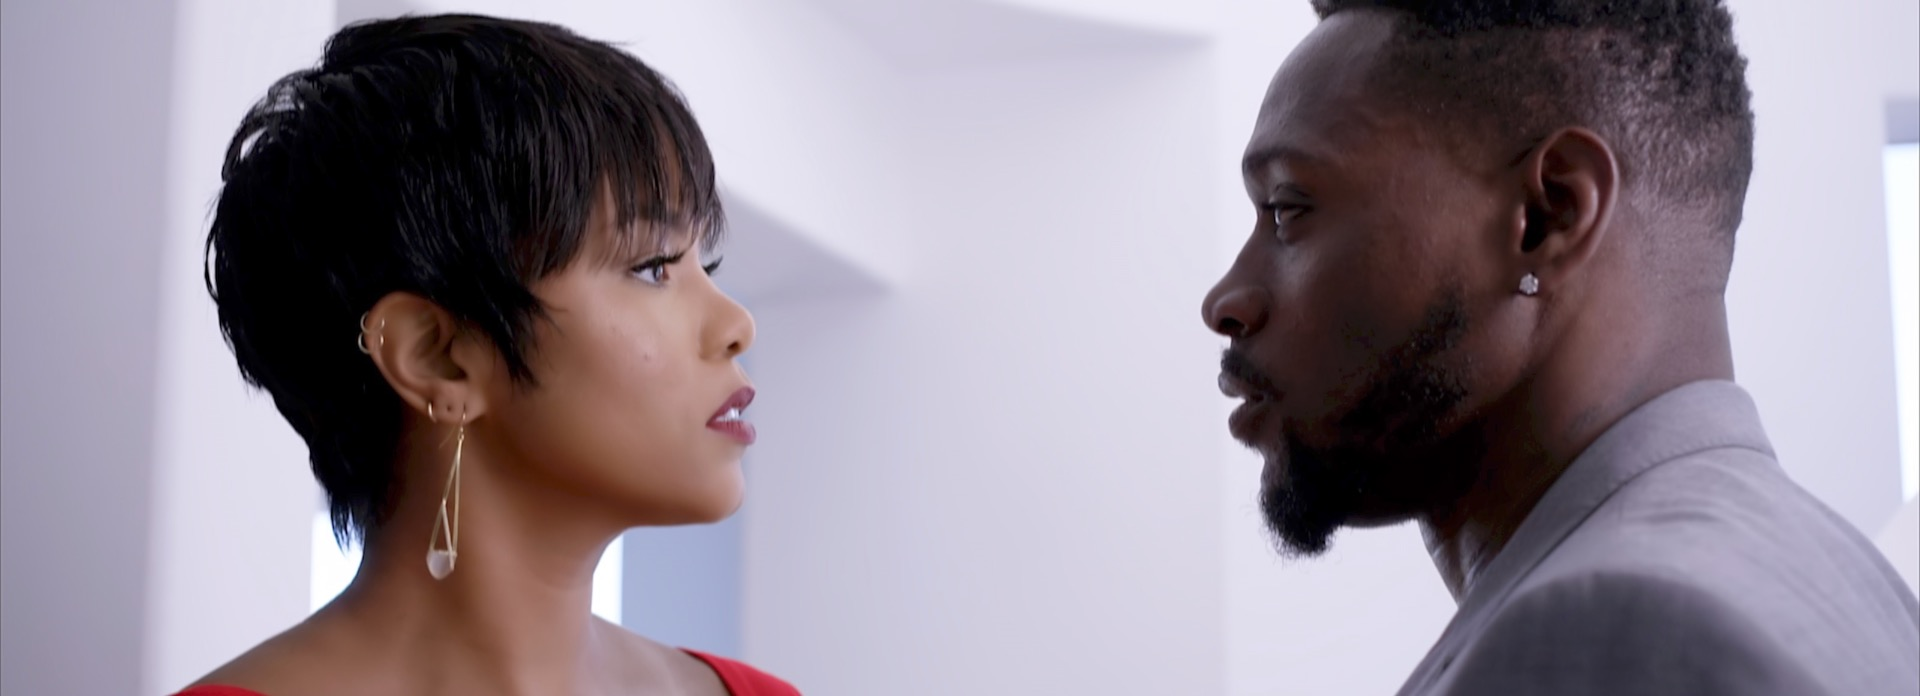 LeToya Luckett - Back2Life - Directed by Michael Vaughn Hernandez